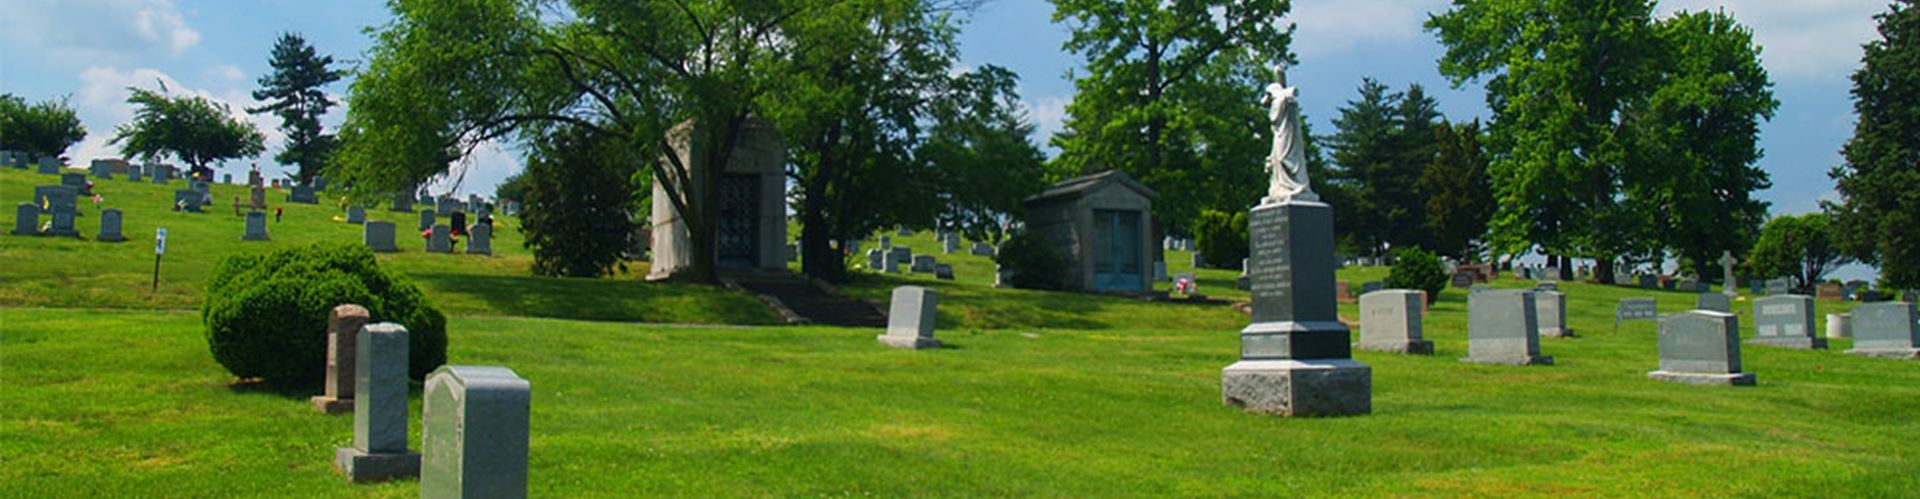 Lincoln Memorial Cemetery, MD